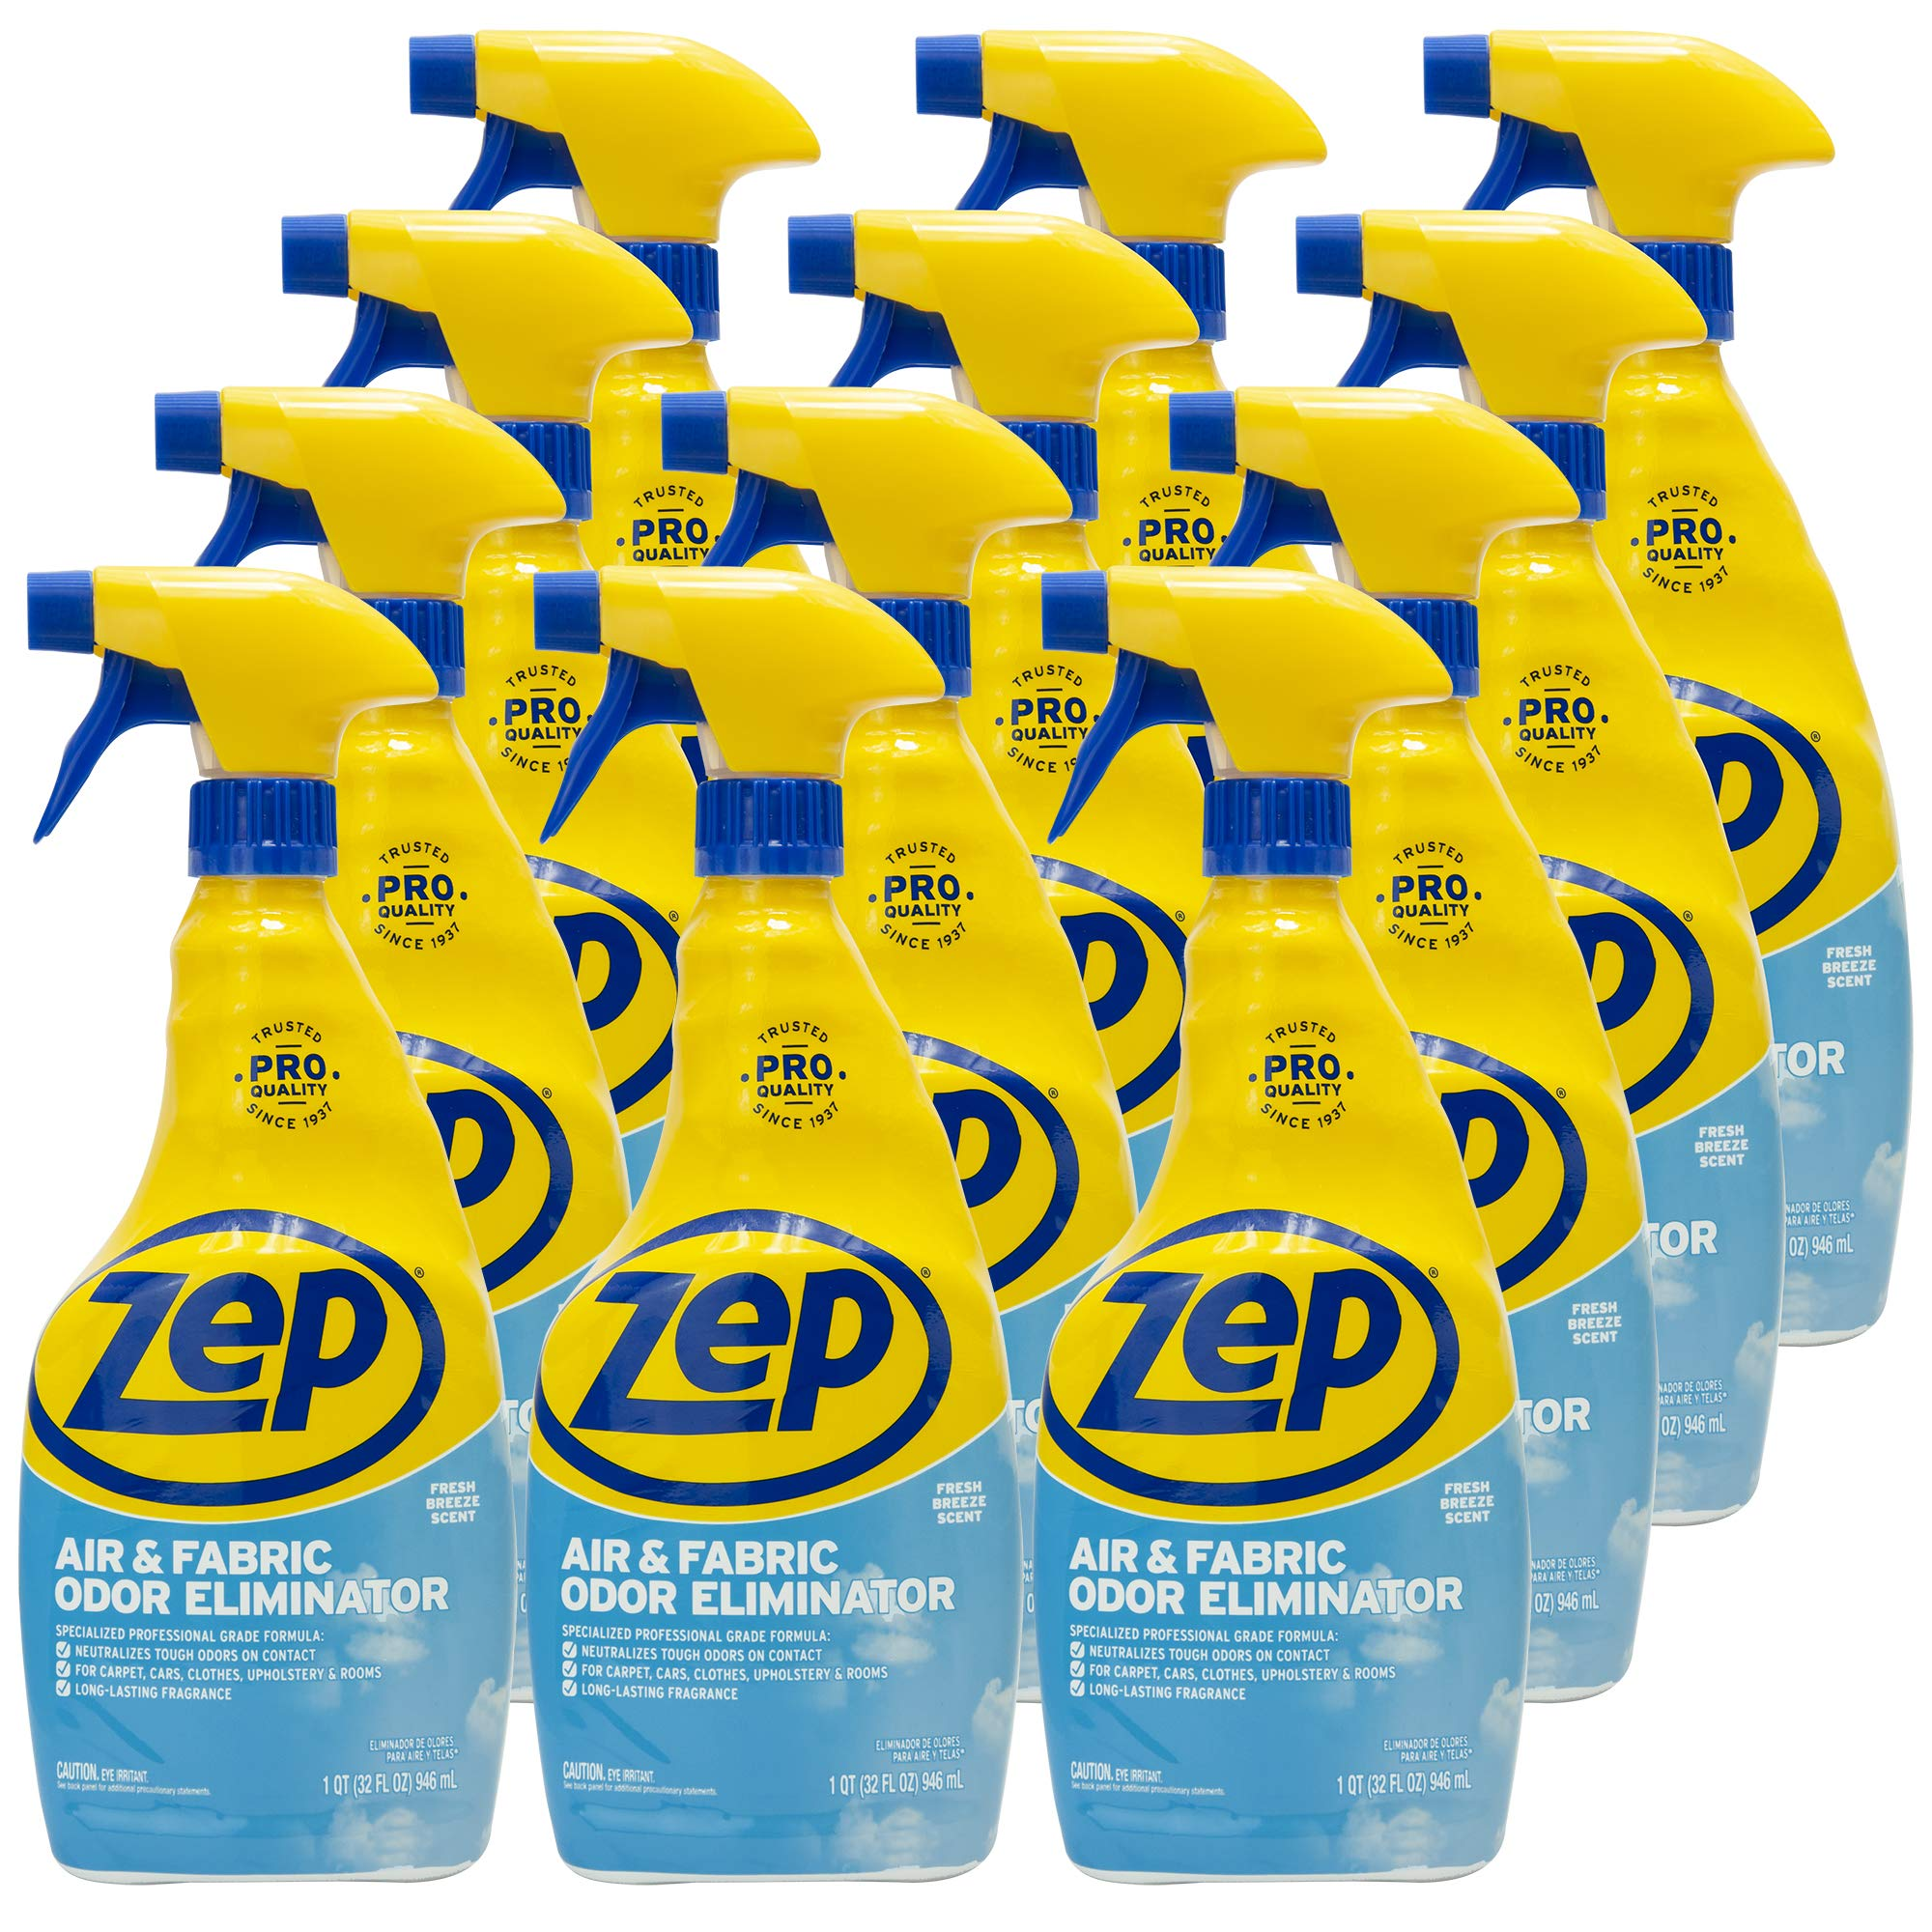 Zep Air and Fabric Odor Eliminator 32 Ounce ZUAIR32 (Case of 12)